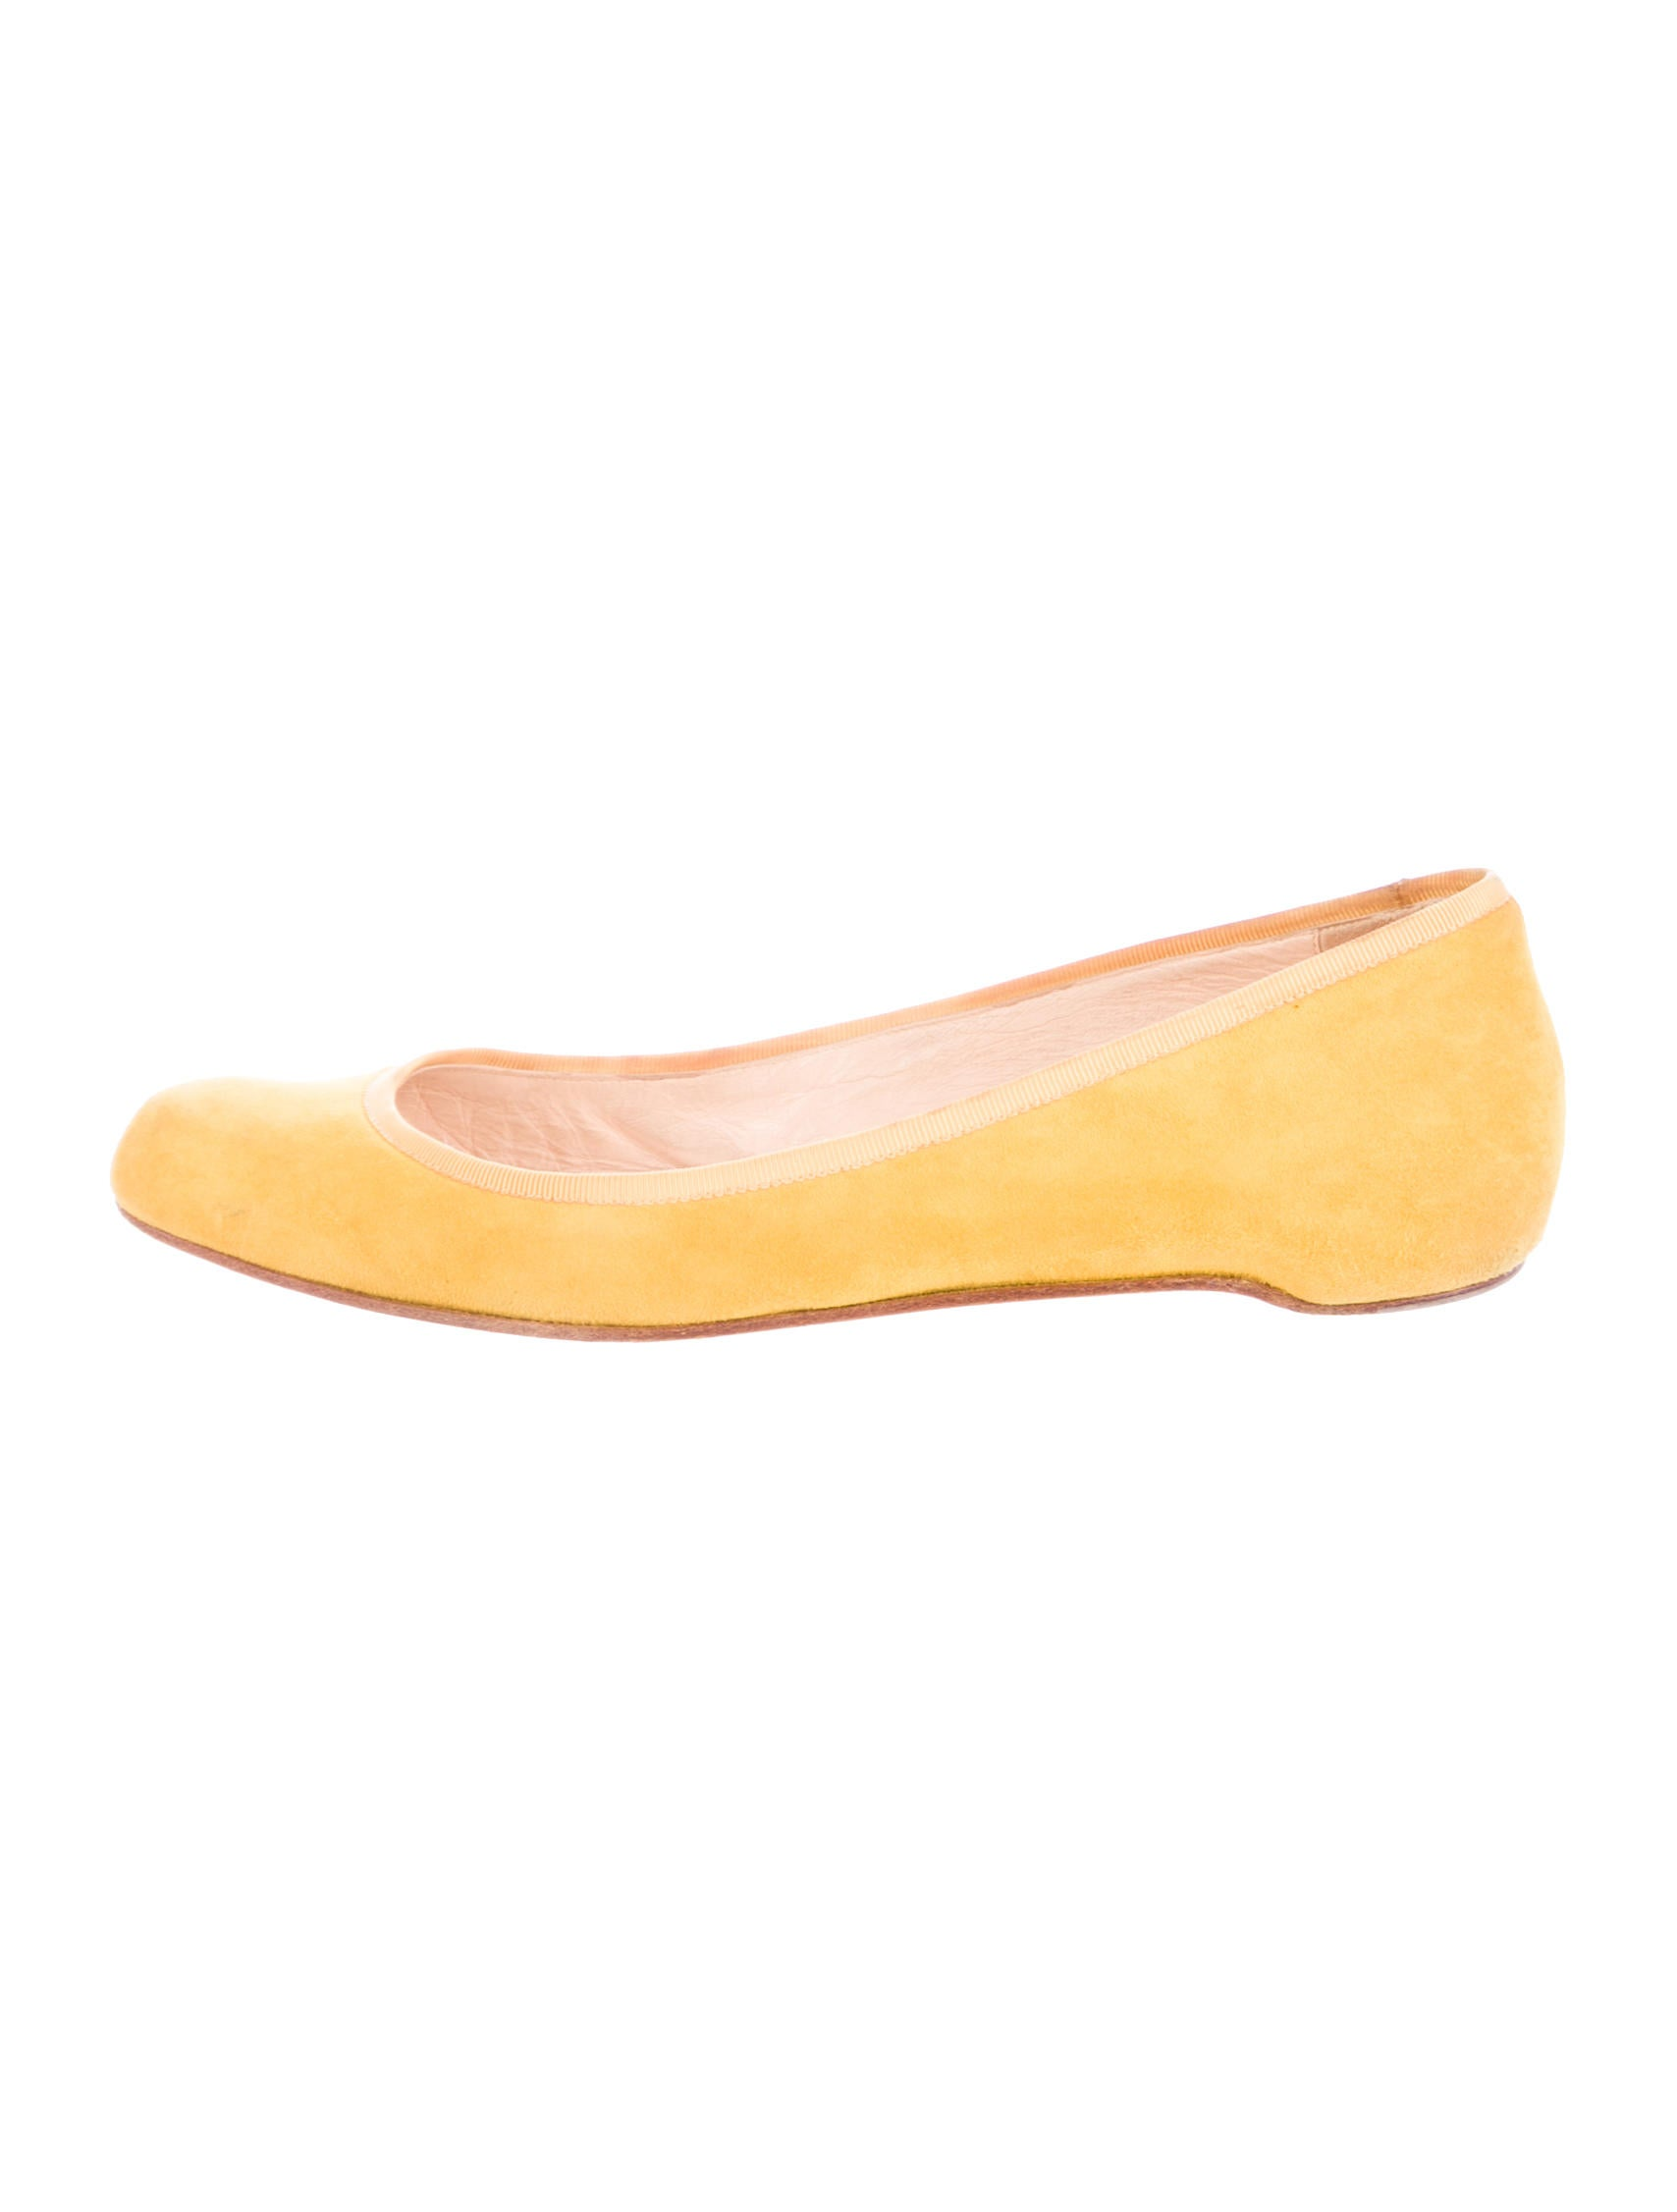 christian louis vuitton heels - Christian Louboutin Suede Round-Toe Flats - Shoes - CHT46223 | The ...